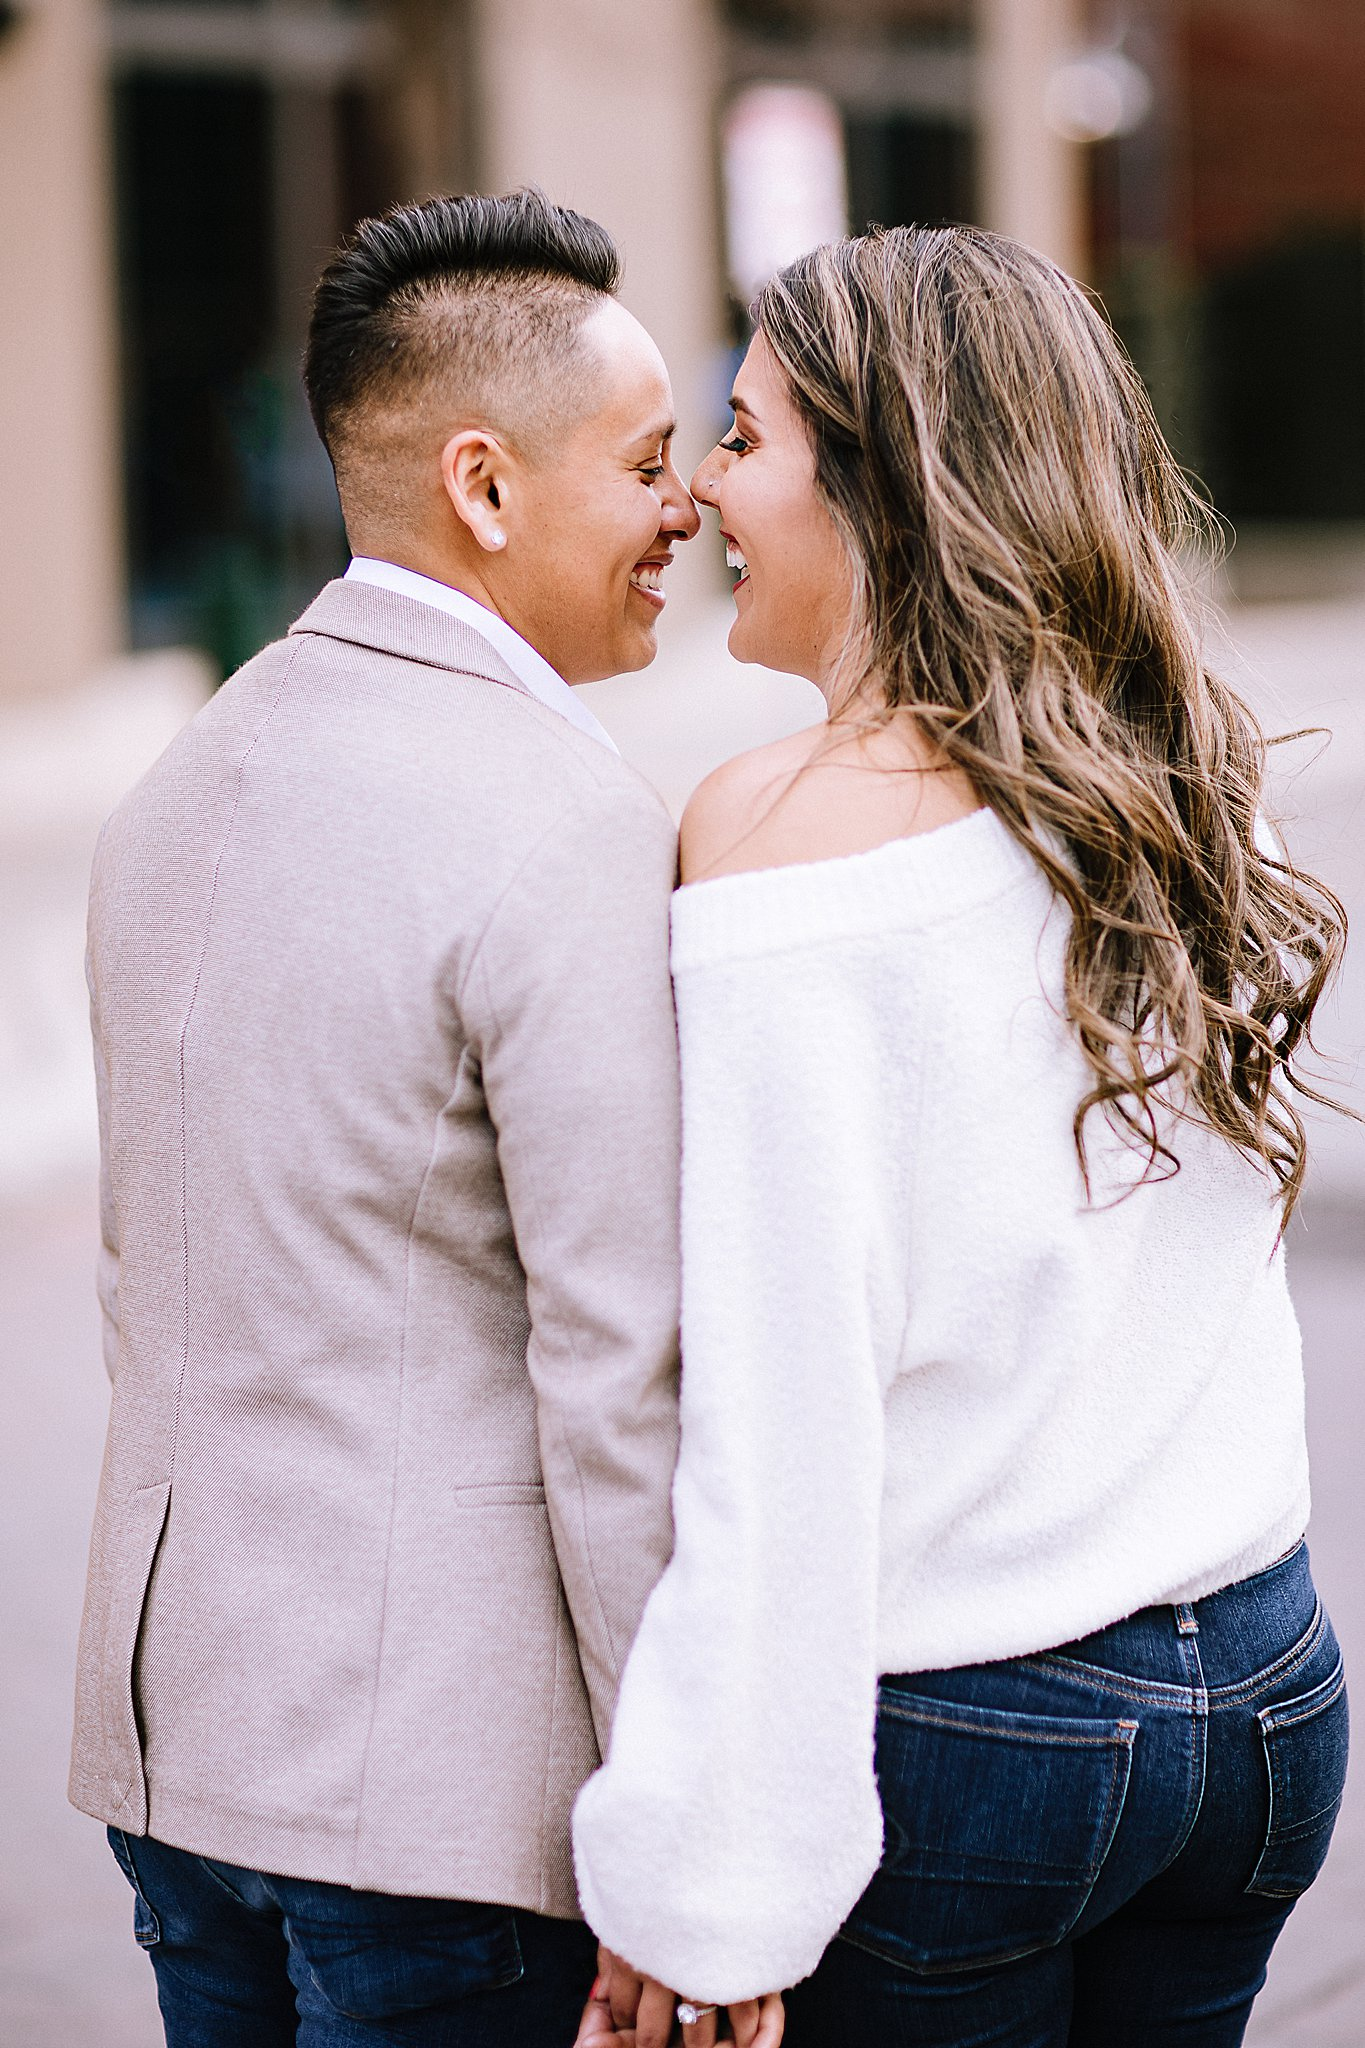 Carly-Barton-Photography-Texas-Engagement-Photographer-The-Historic-Pearl-San-Antonio_0003.jpg